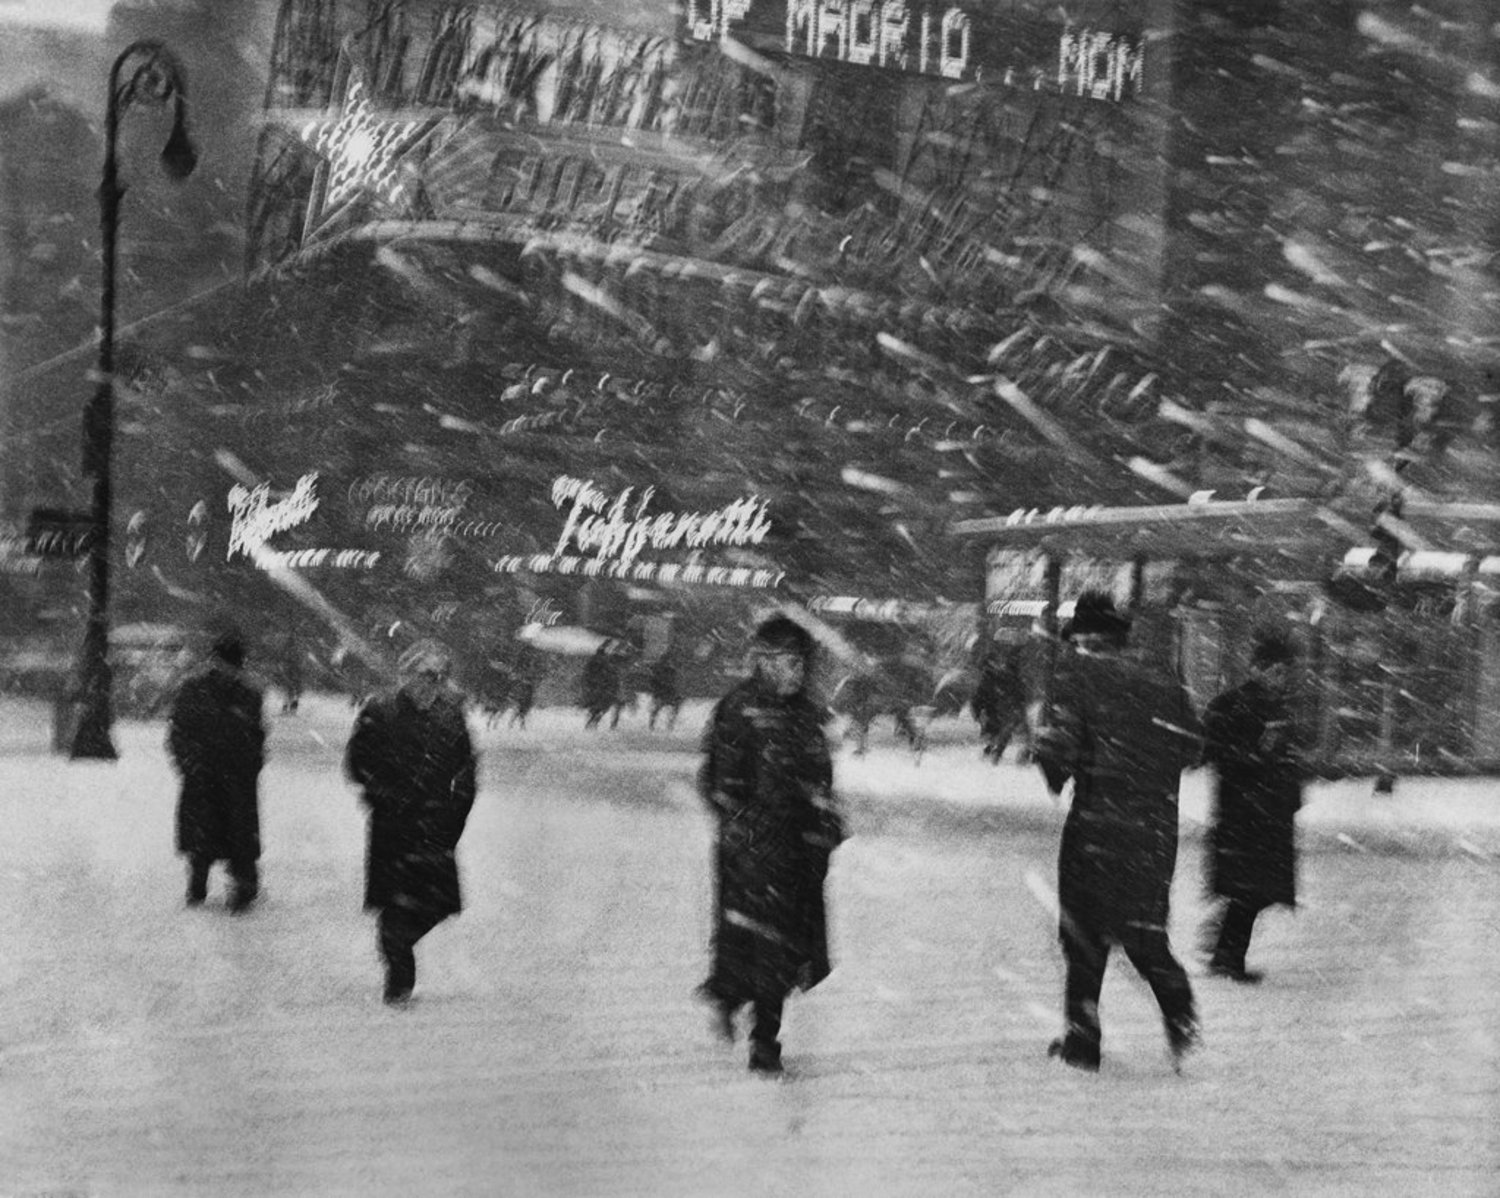 March 3, 1960: Blizzard conditions in Times Square as a system of storms blanketed much of the United States, wreaking customary havoc by grounding planes, halting transit and burying suburbs.